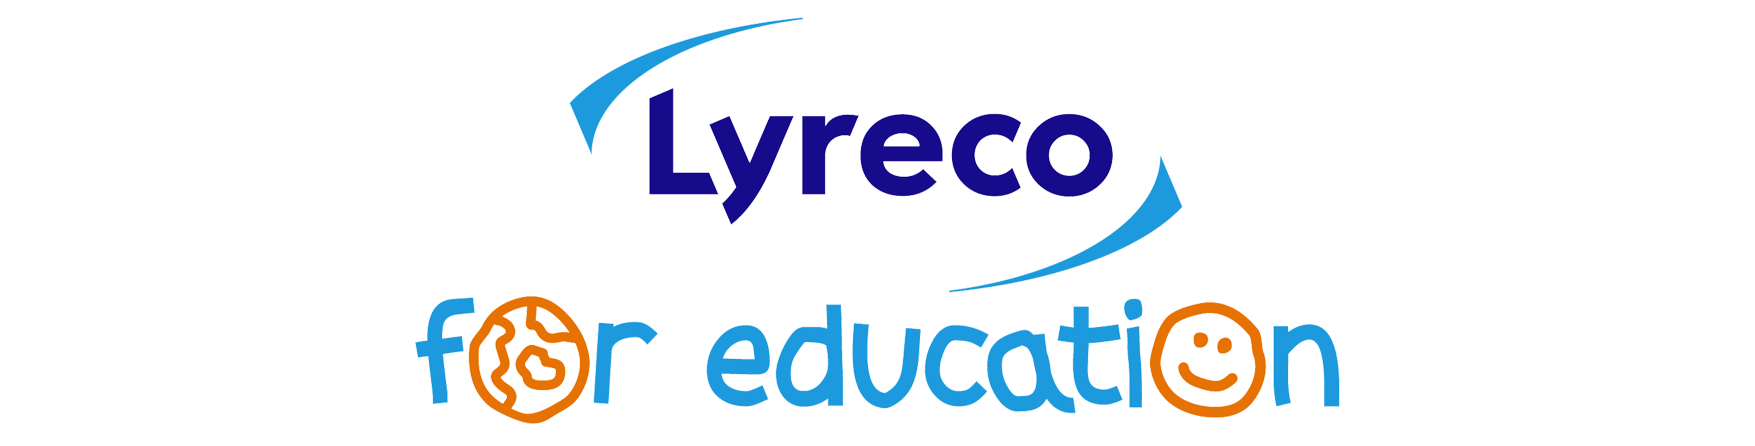 LYRECO_LOGOTYPE_for_Education-01.png